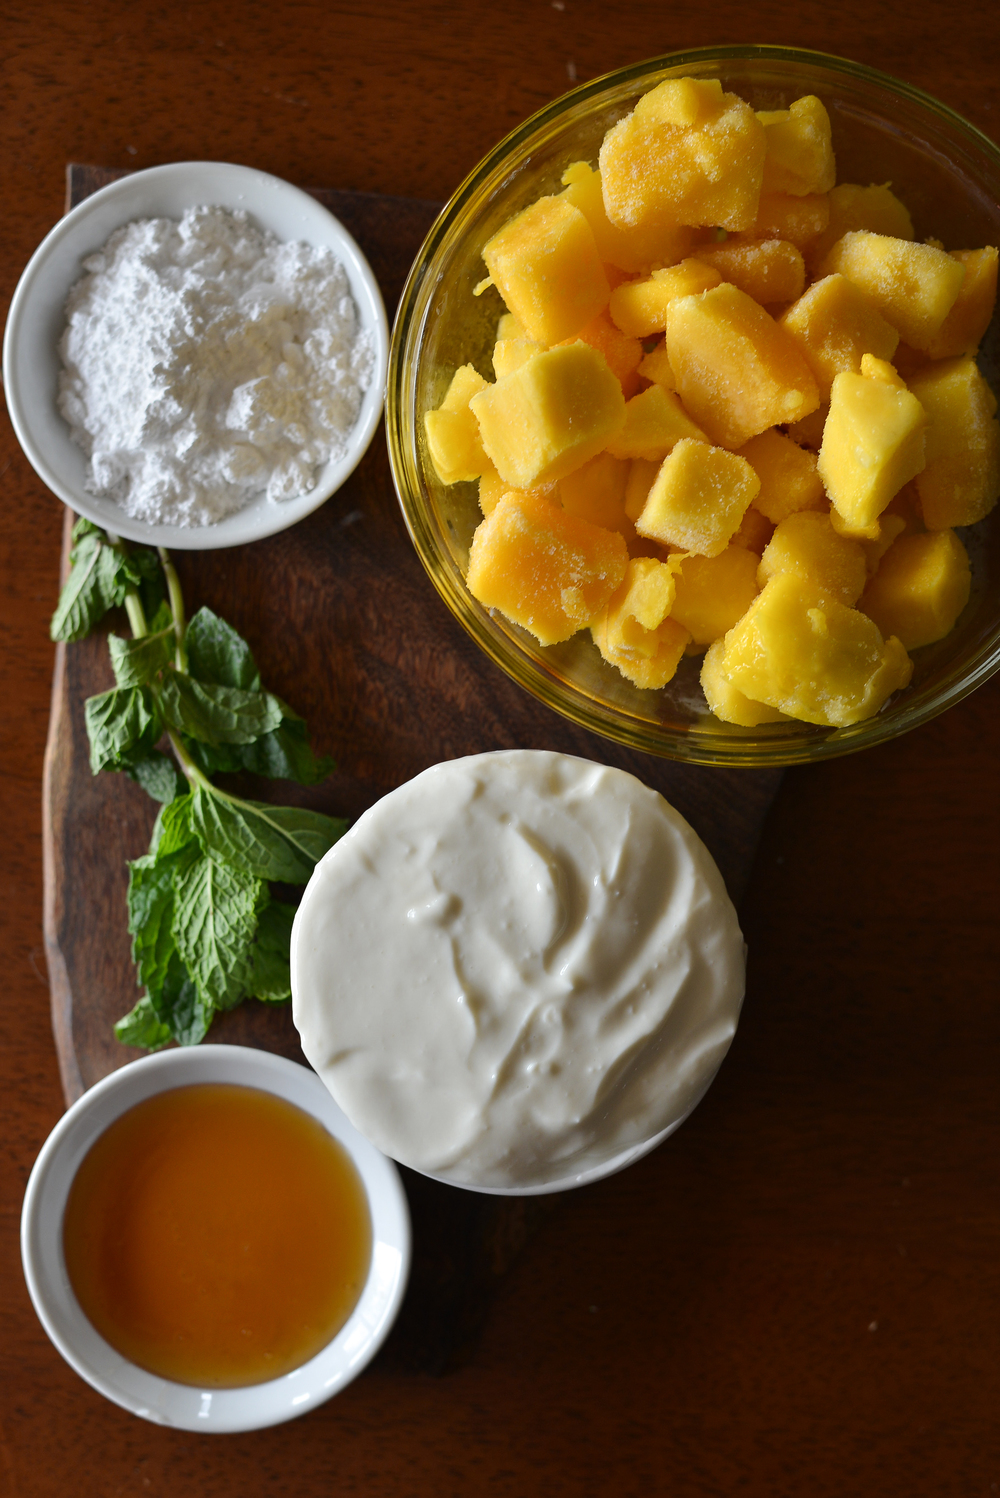 Simple ingredients. Bright mango and Greek yogurt offer tons of nutrition in this recipe.